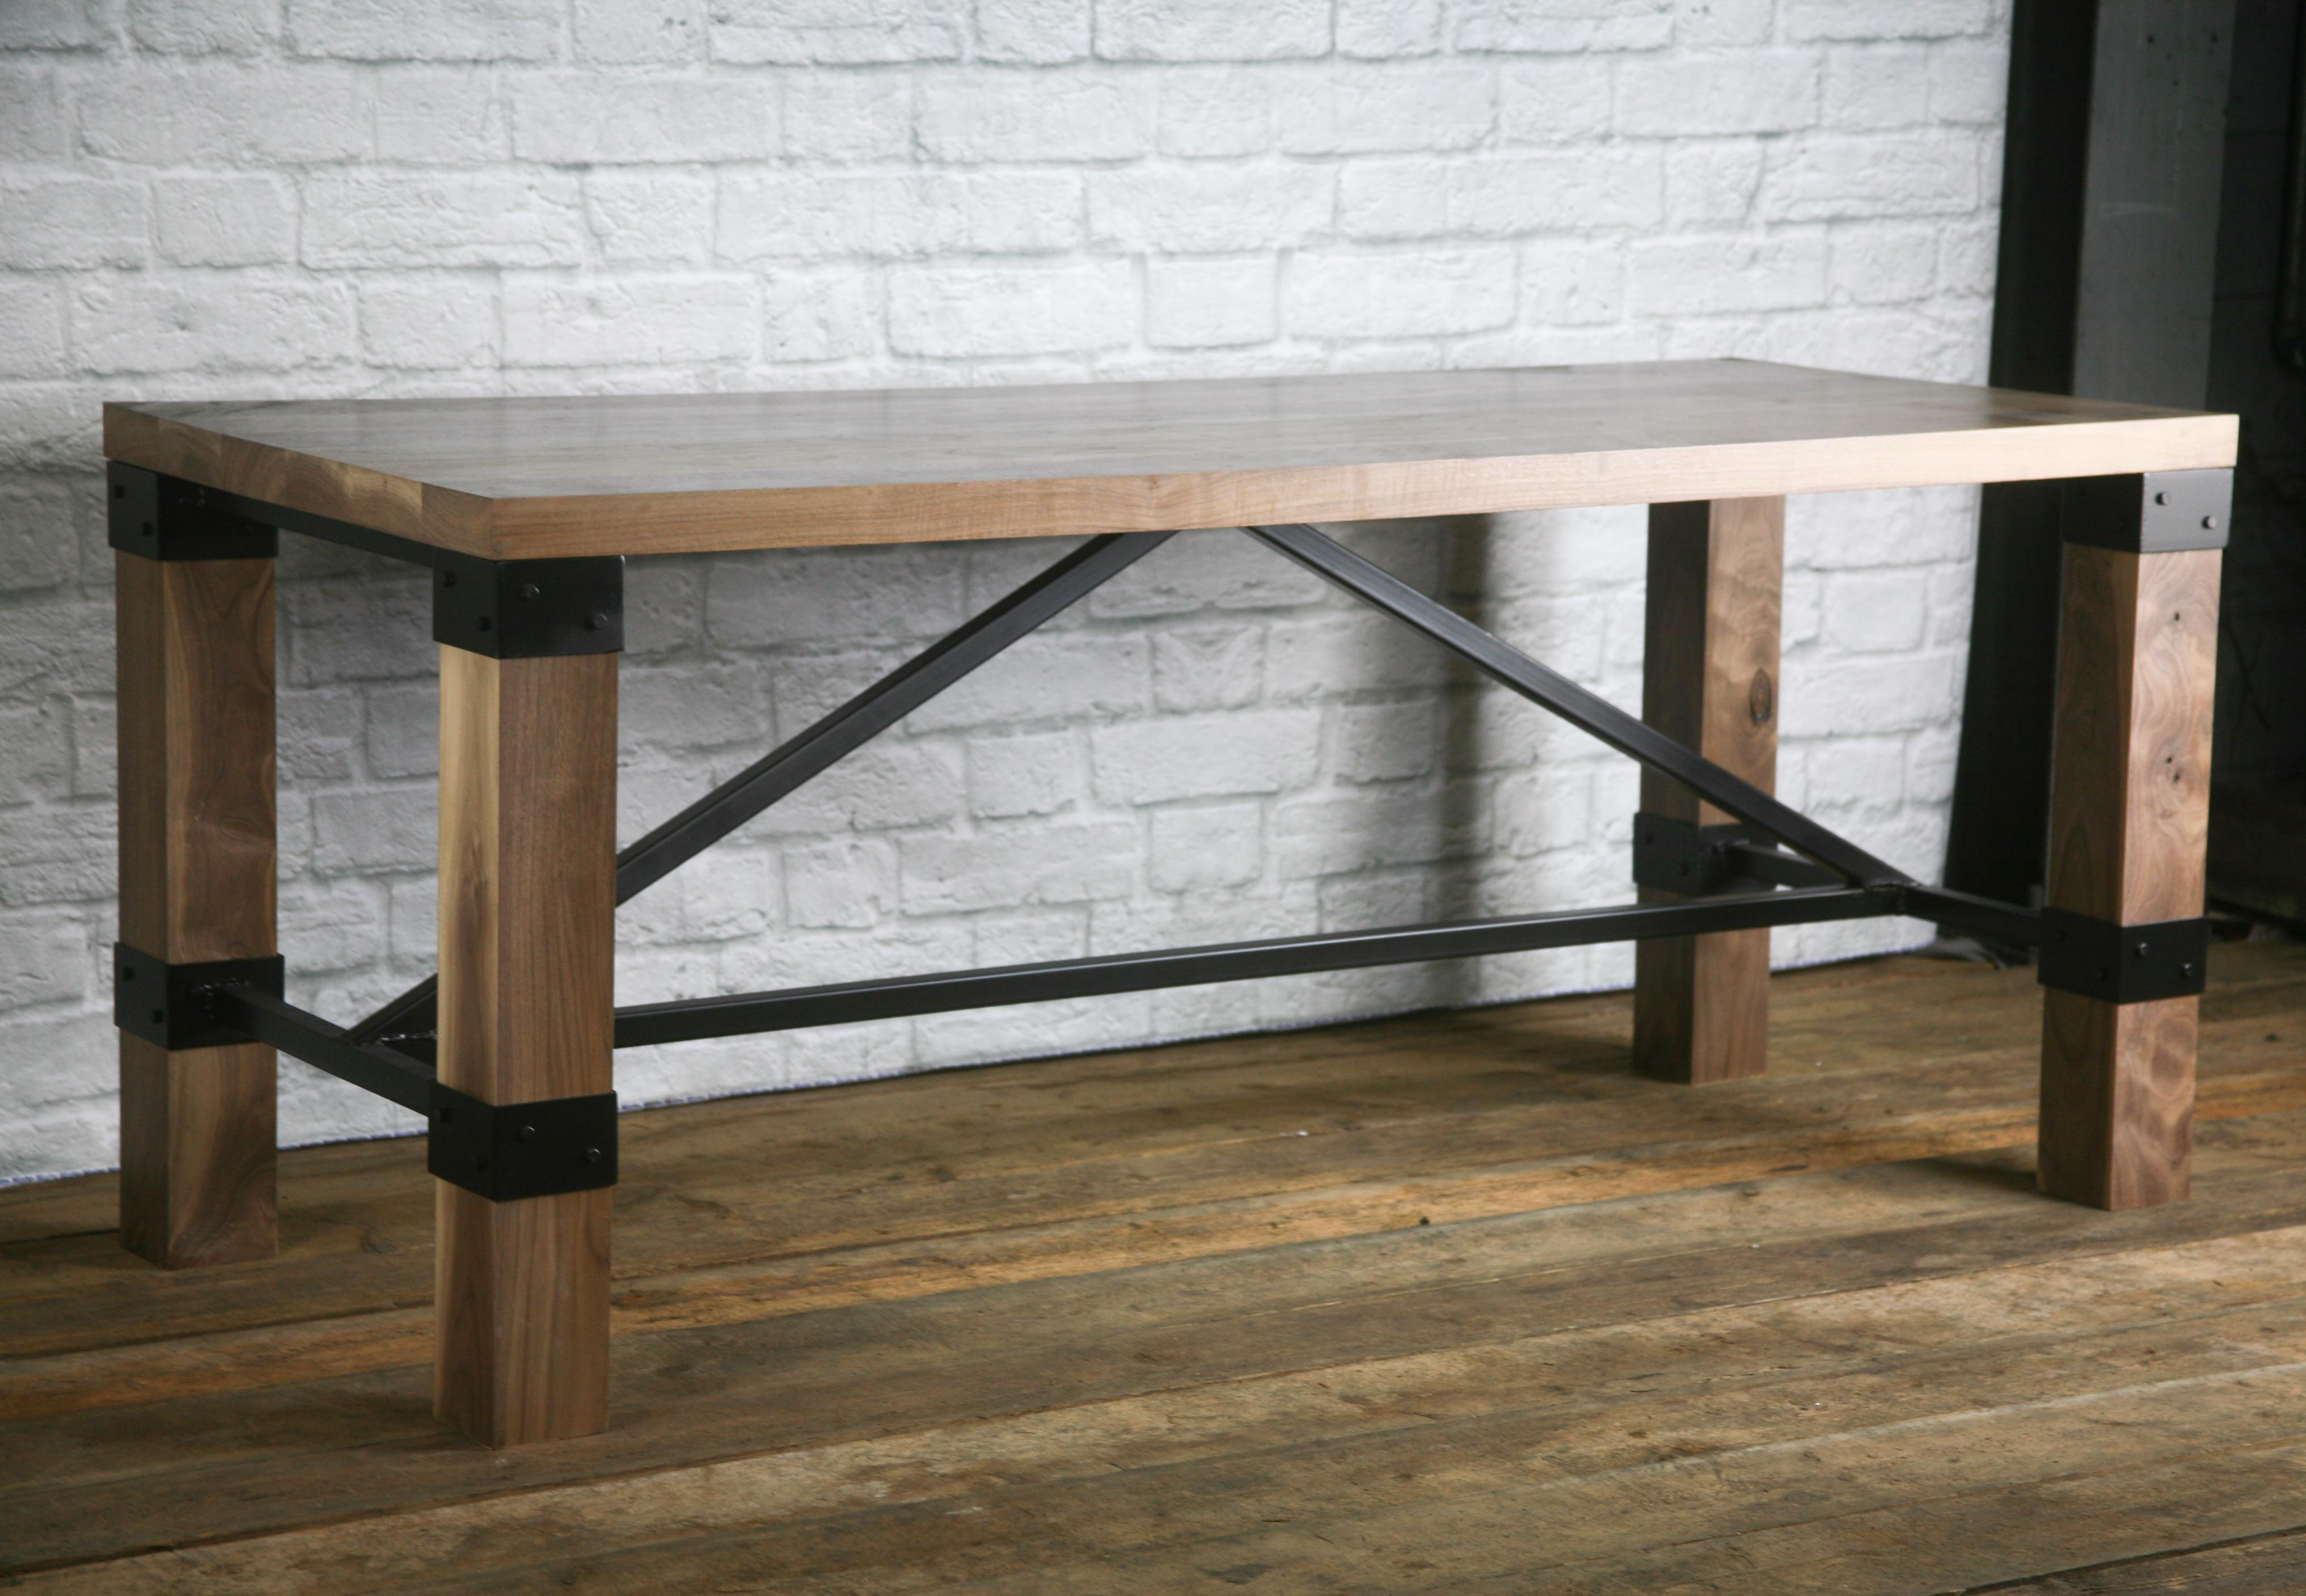 Rustic industrial farmhouse table walnut desk rustic kitchen island modern conference table retail display